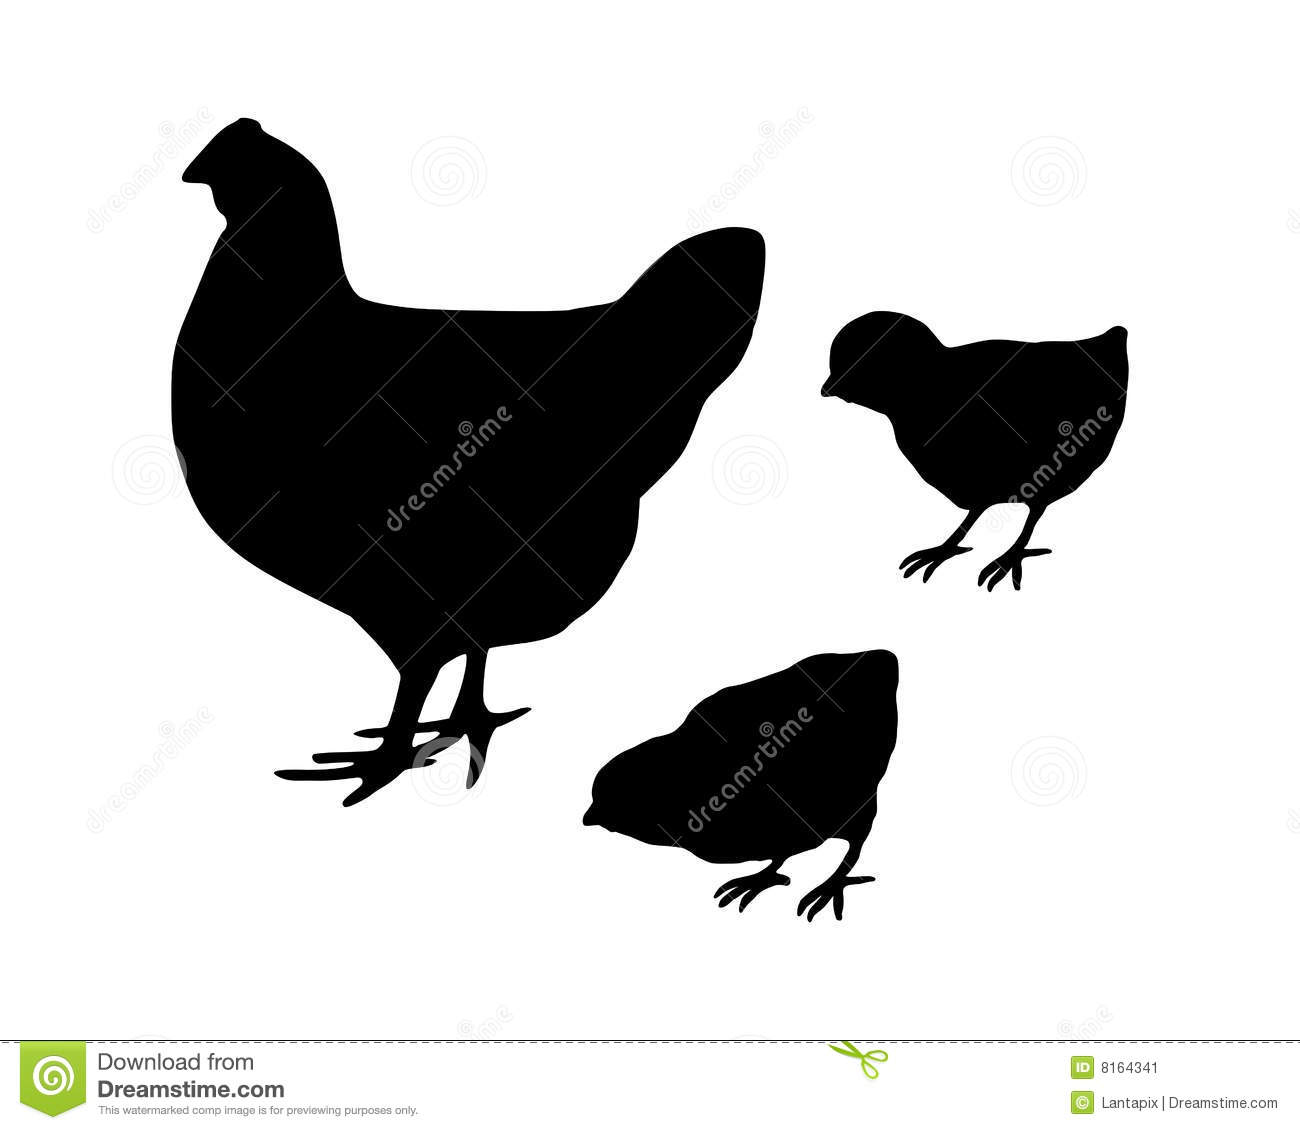 Hen business plan